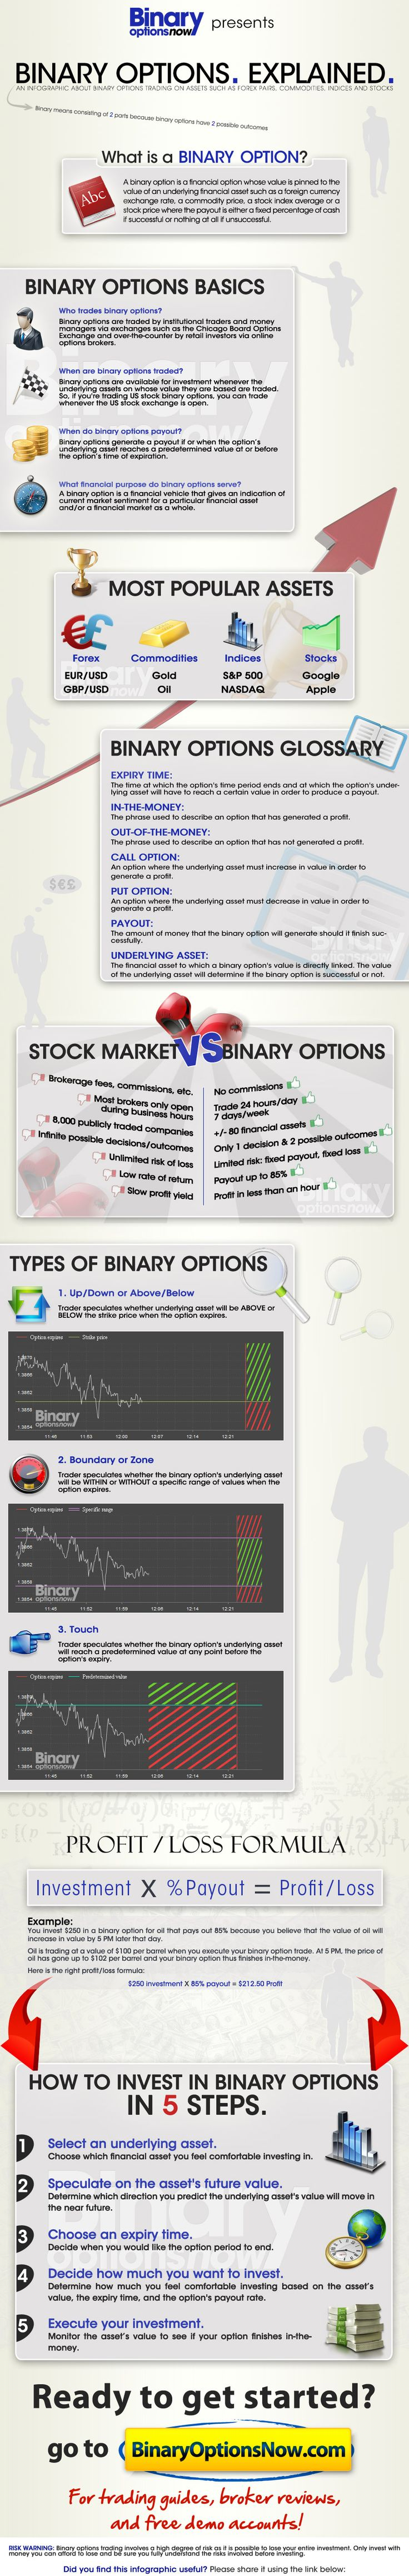 binary options infographic resumes